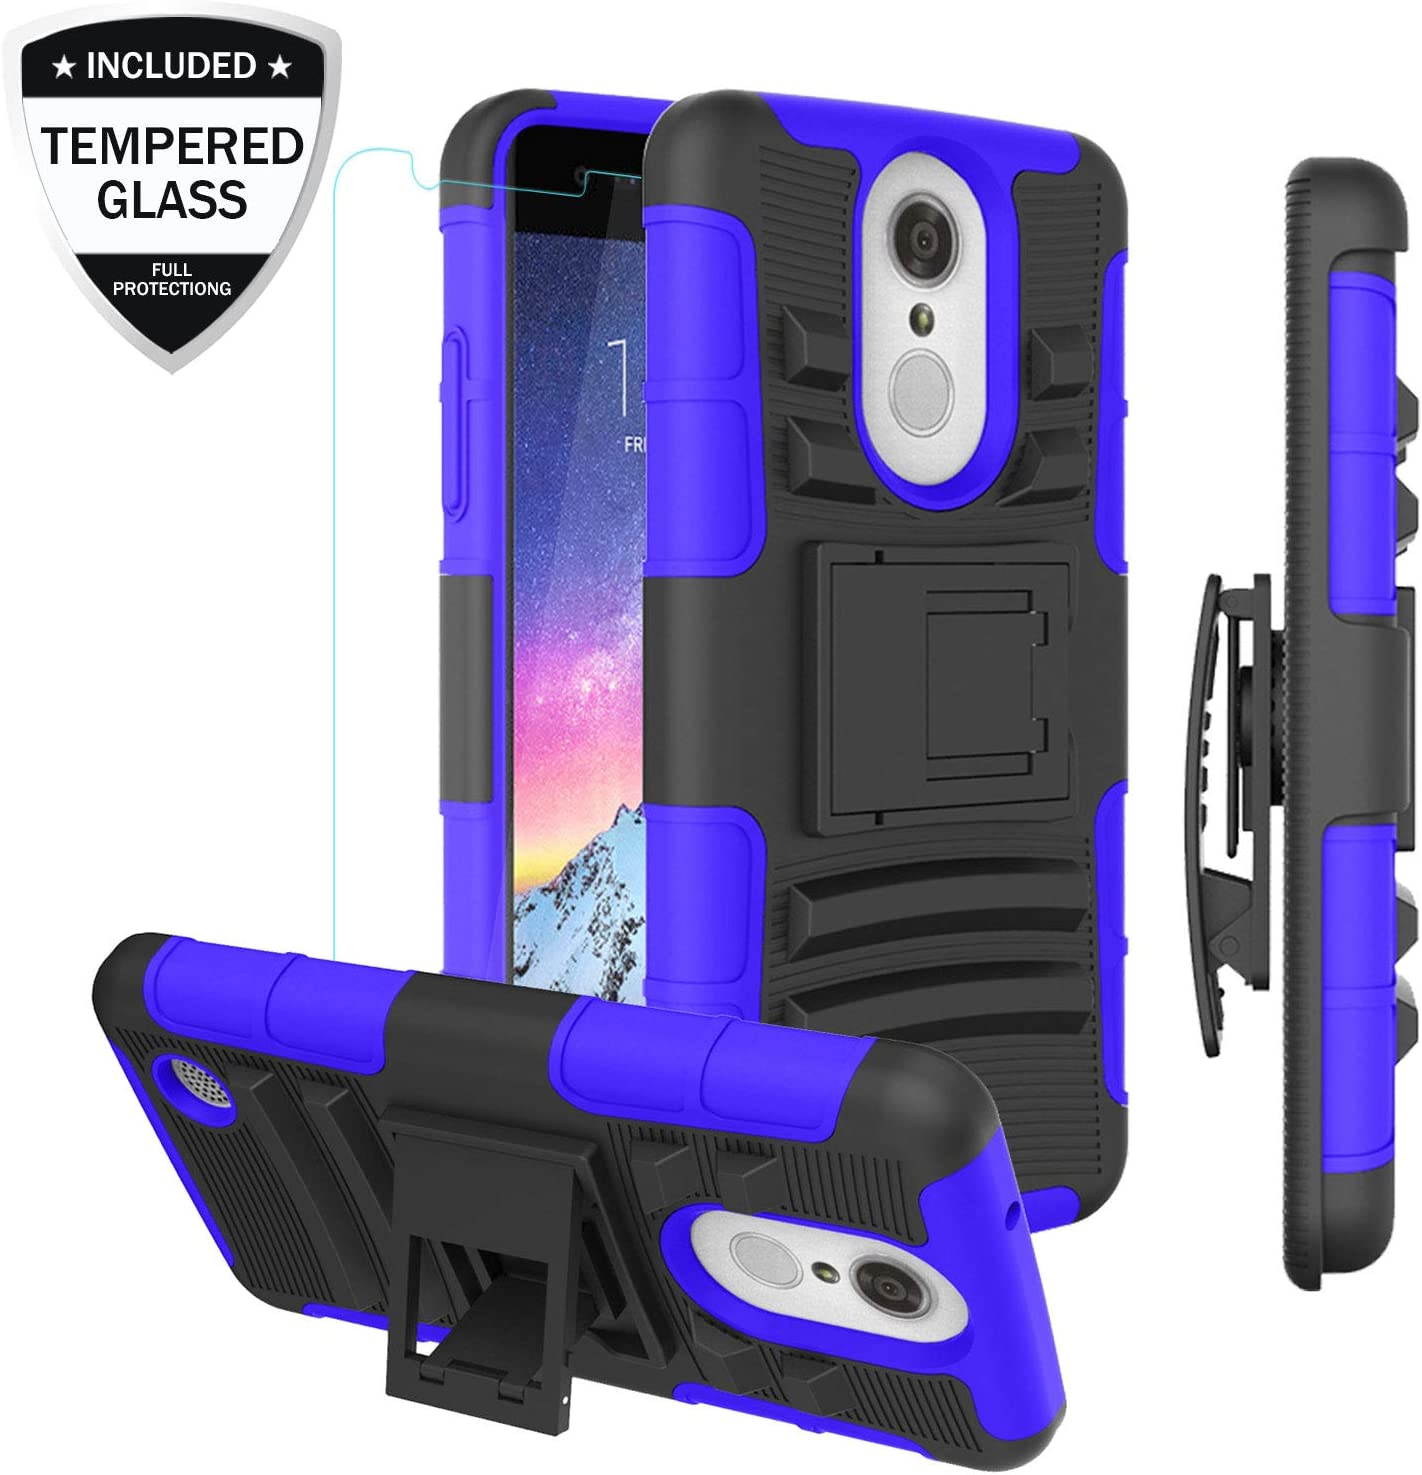 LG Aristo/LG Rebel 2 LTE/Rebel 3 LTE/Phoenix 3/Fortune/Risio 2/K8 2017 Phone Case w/Tempered Glass Screen Protector, Heavy Duty Shockproof Protective Case w/Kickstand Belt Clip for Men/Women/Boy, Blue